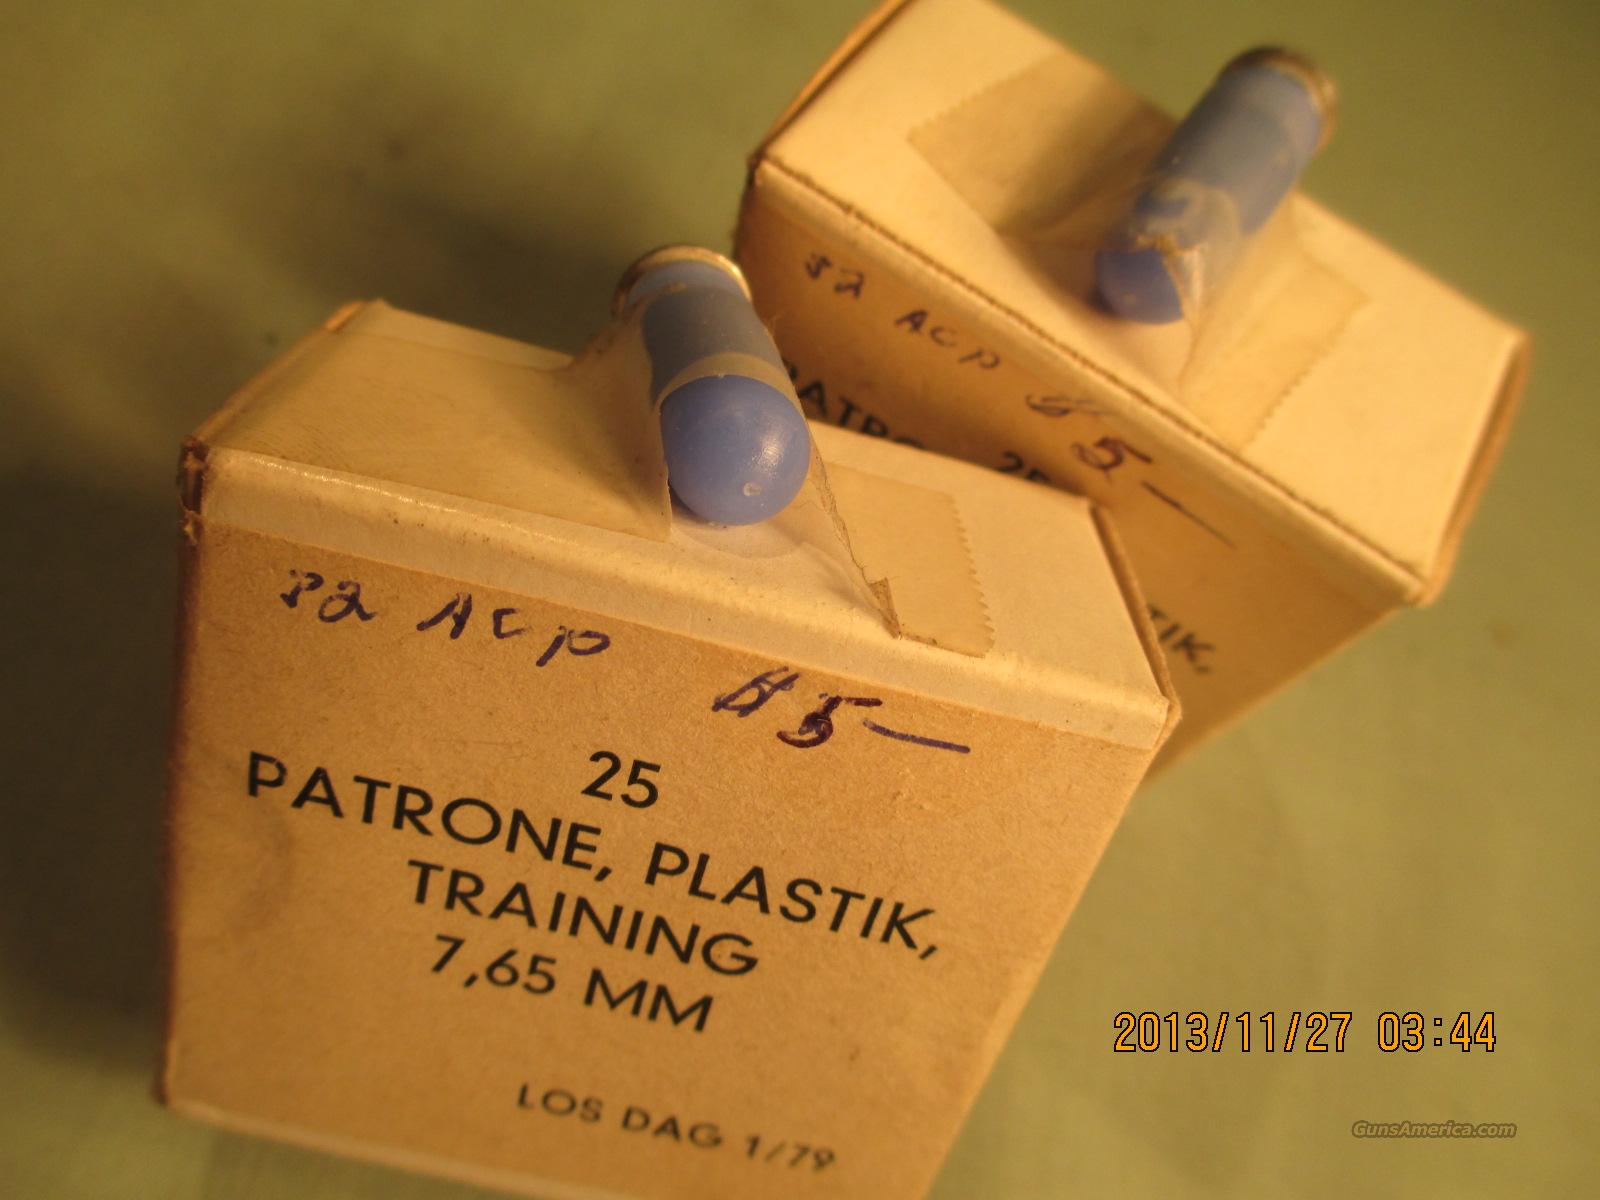 7.65 MM TRAINING PLASTIC 50 ROUNDS  Non-Guns > Ammunition